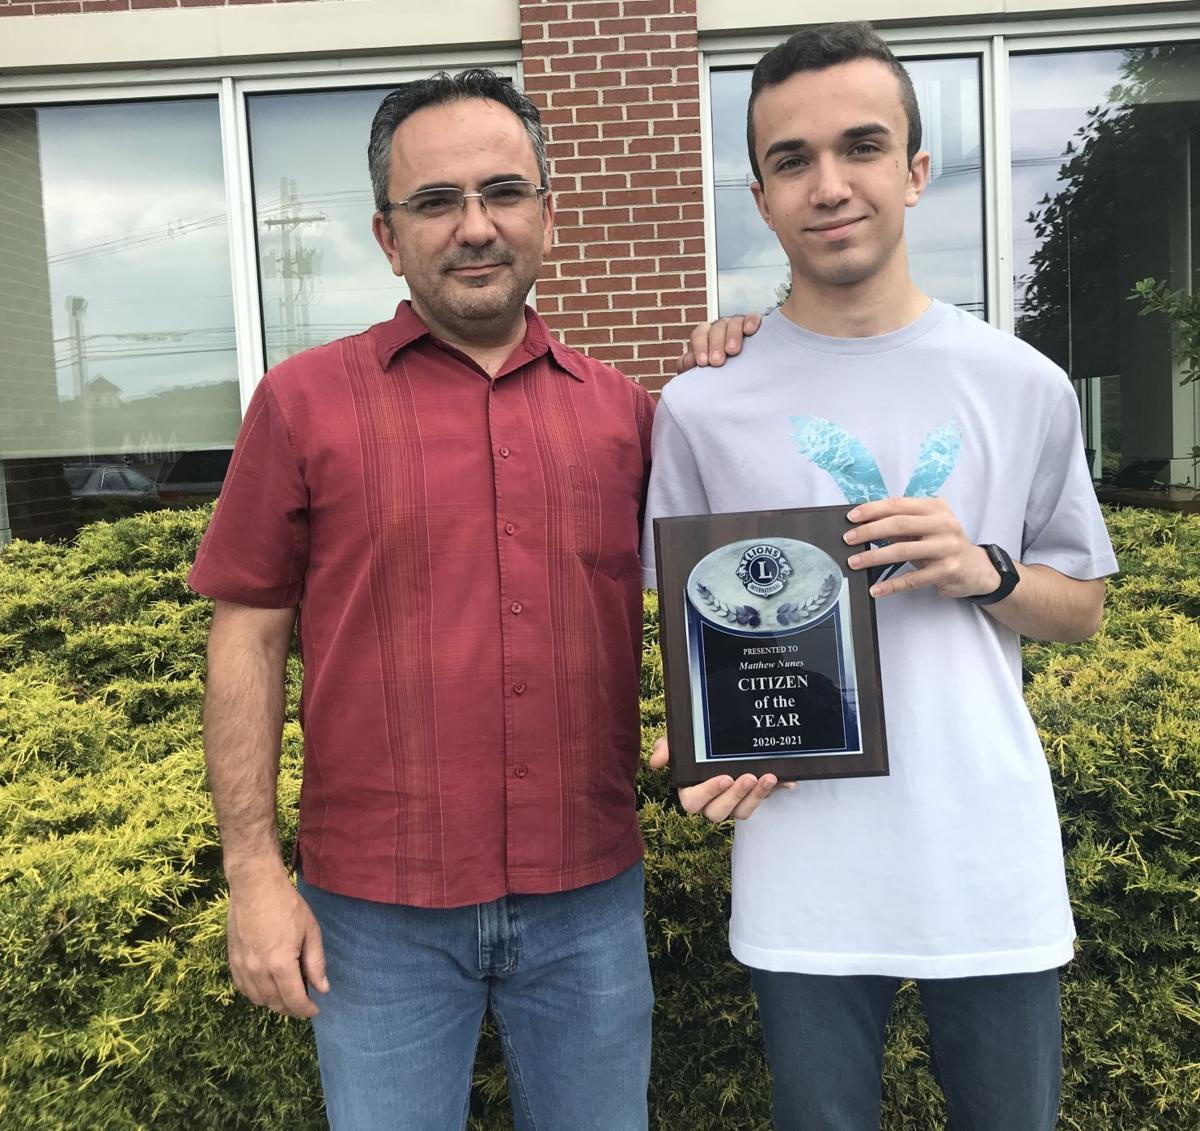 Warren Township teen named Lions Club's 'Citizen of the Year' for face shield effort